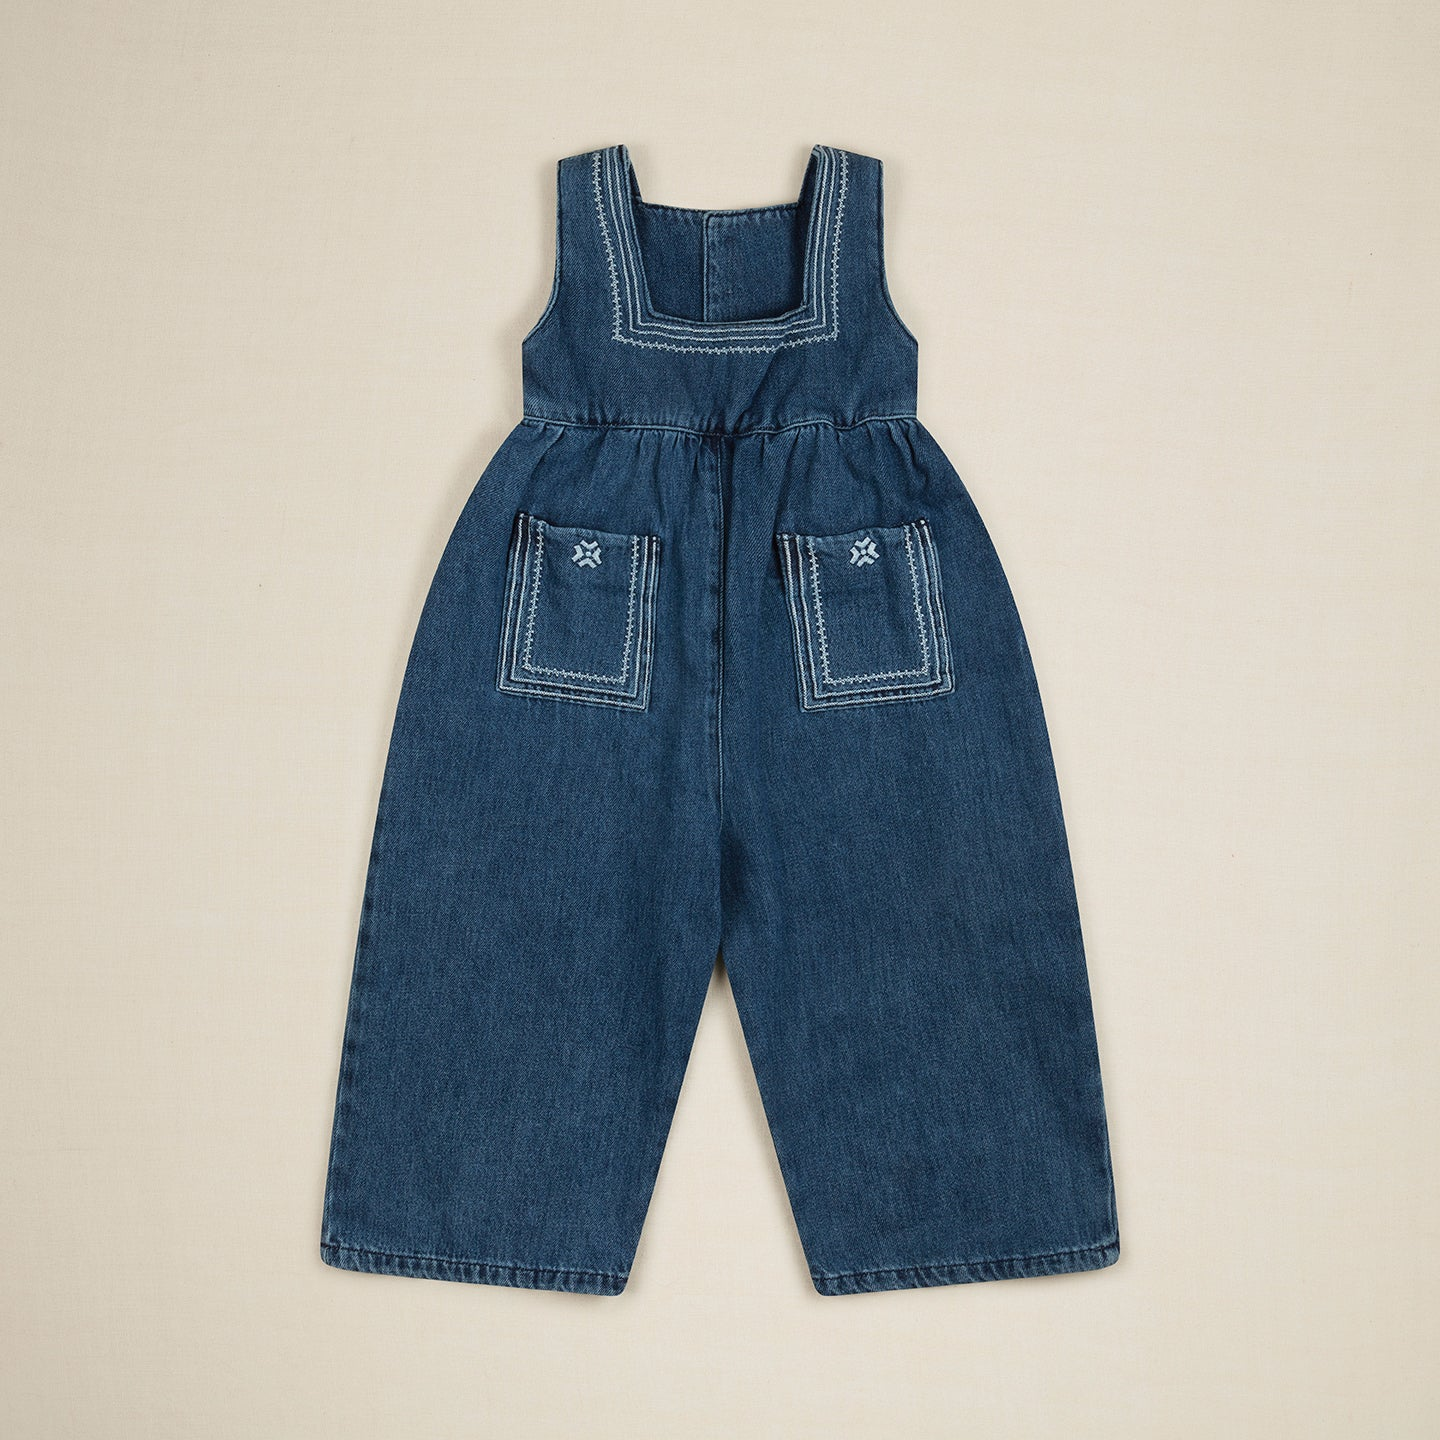 BONNIE DUNGAREE - DENIM